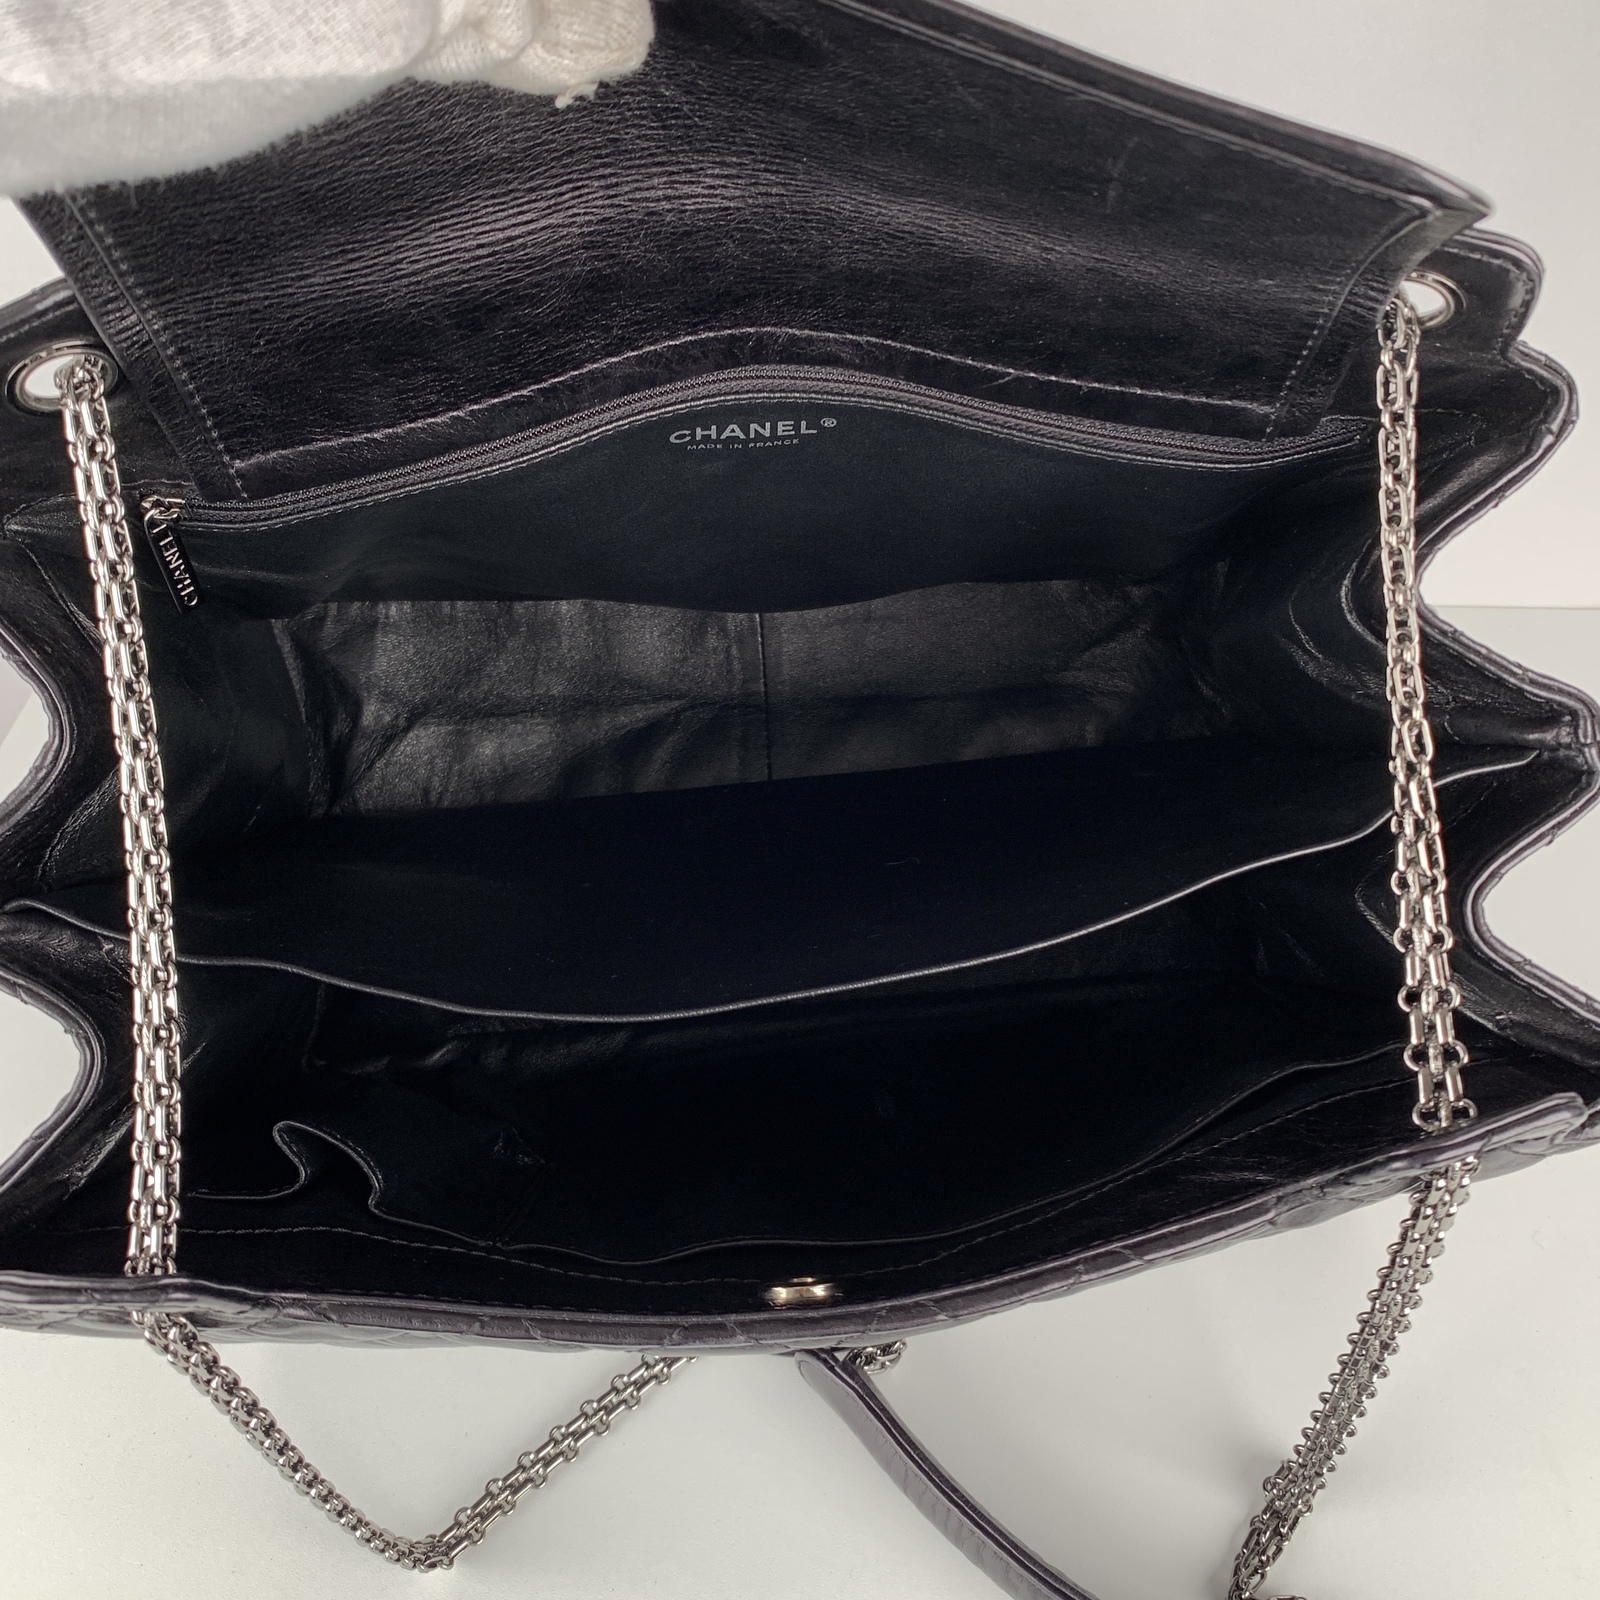 Authentic Chanel Black Quilted Leather Large Reissue 2.55 Accordion Flap Bag image 9